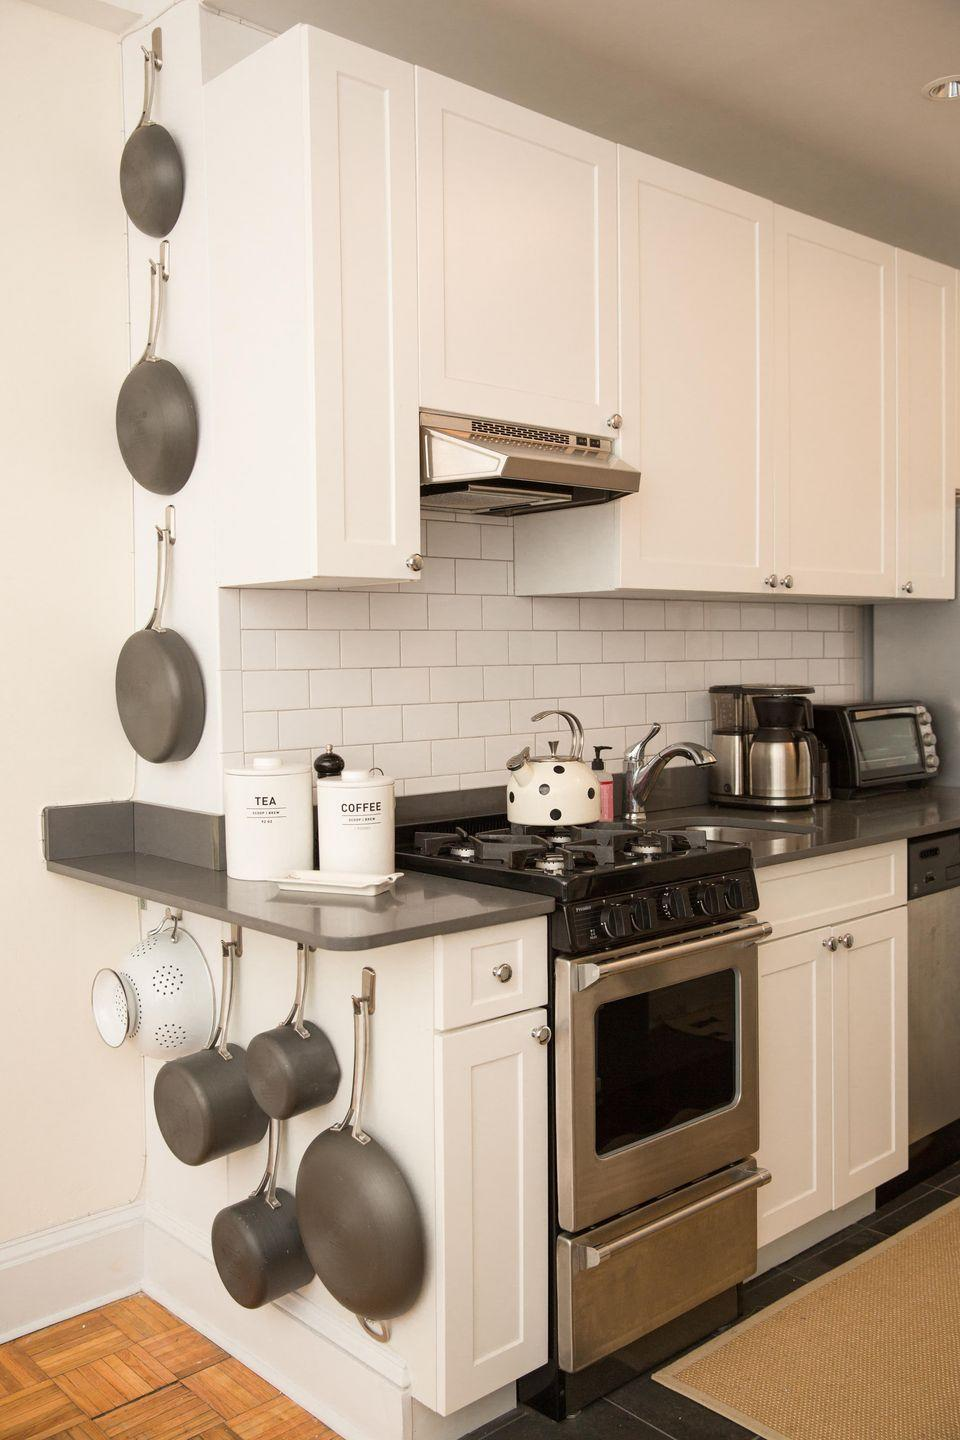 """<p>Instead of taking up valuable cabinet space with these clunky items, use Command Hooks to hang them on an unused wall, <a href=""""https://www.goodhousekeeping.com/home/organizing/a43607/professional-organizer-kitchen-makeover/"""" rel=""""nofollow noopener"""" target=""""_blank"""" data-ylk=""""slk:like this pro organizer did"""" class=""""link rapid-noclick-resp"""">like this pro organizer did</a>. S<span class=""""redactor-invisible-space"""">tart by hanging the biggest items first, then incorporate the medium-sized ones and finish with the smallest items. </span></p><p><span class=""""redactor-invisible-space""""><a class=""""link rapid-noclick-resp"""" href=""""https://www.amazon.com/Command-Utility-Medium-6-Hooks-17001-6ES/dp/B000FSORW4?tag=syn-yahoo-20&ascsubtag=%5Bartid%7C10055.g.2610%5Bsrc%7Cyahoo-us"""" rel=""""nofollow noopener"""" target=""""_blank"""" data-ylk=""""slk:SHOP COMMAND HOOKS"""">SHOP COMMAND HOOKS</a><br></span></p>"""